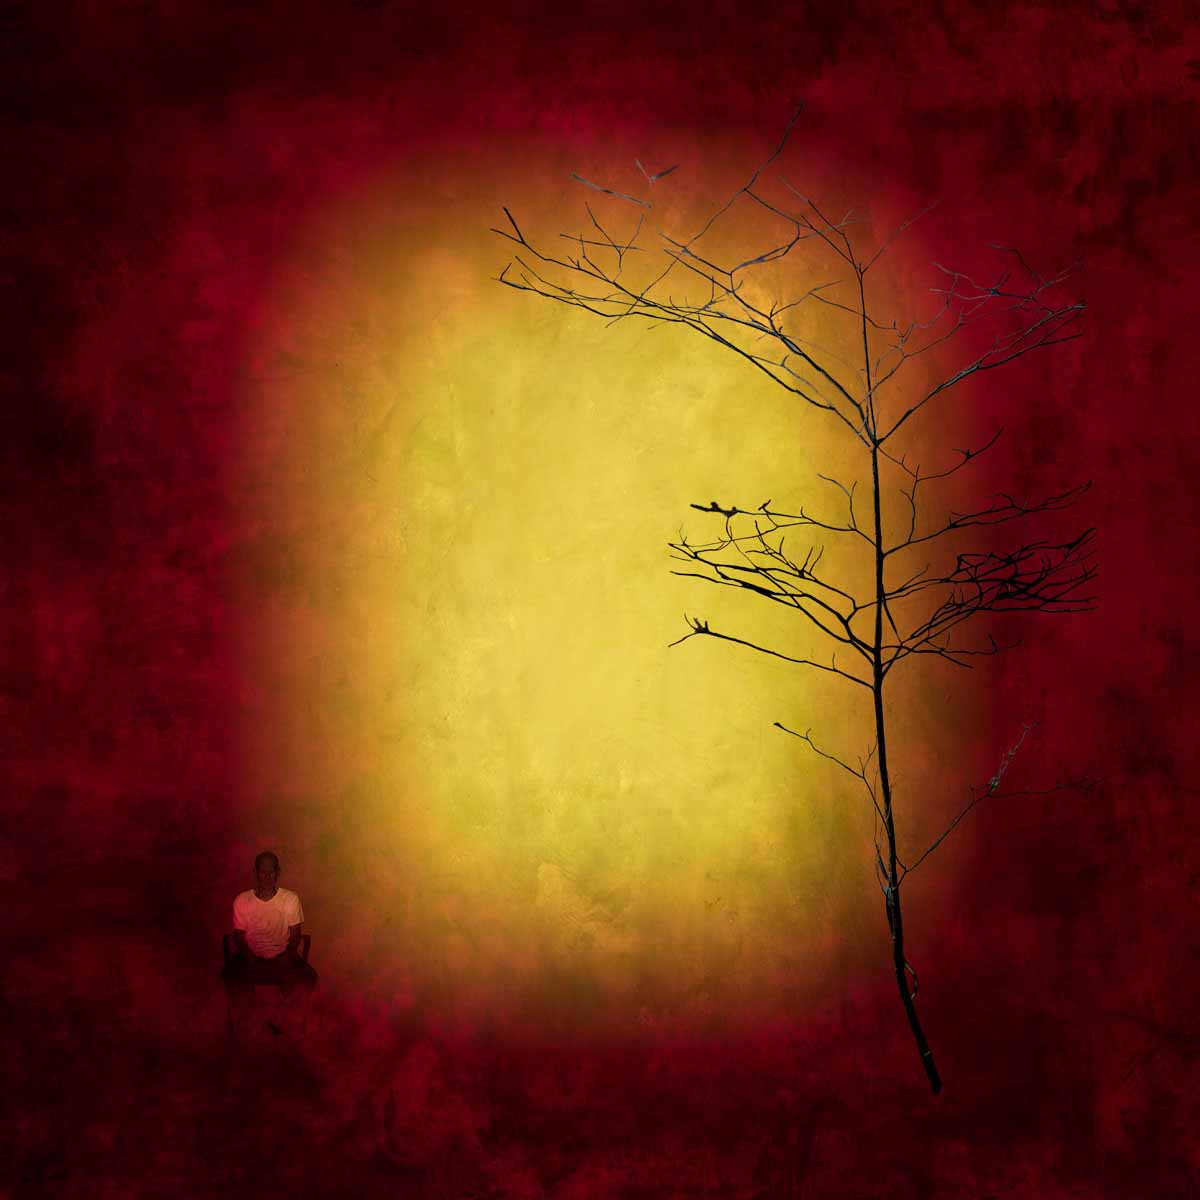 The Feeling of Alone by Bruce Panock